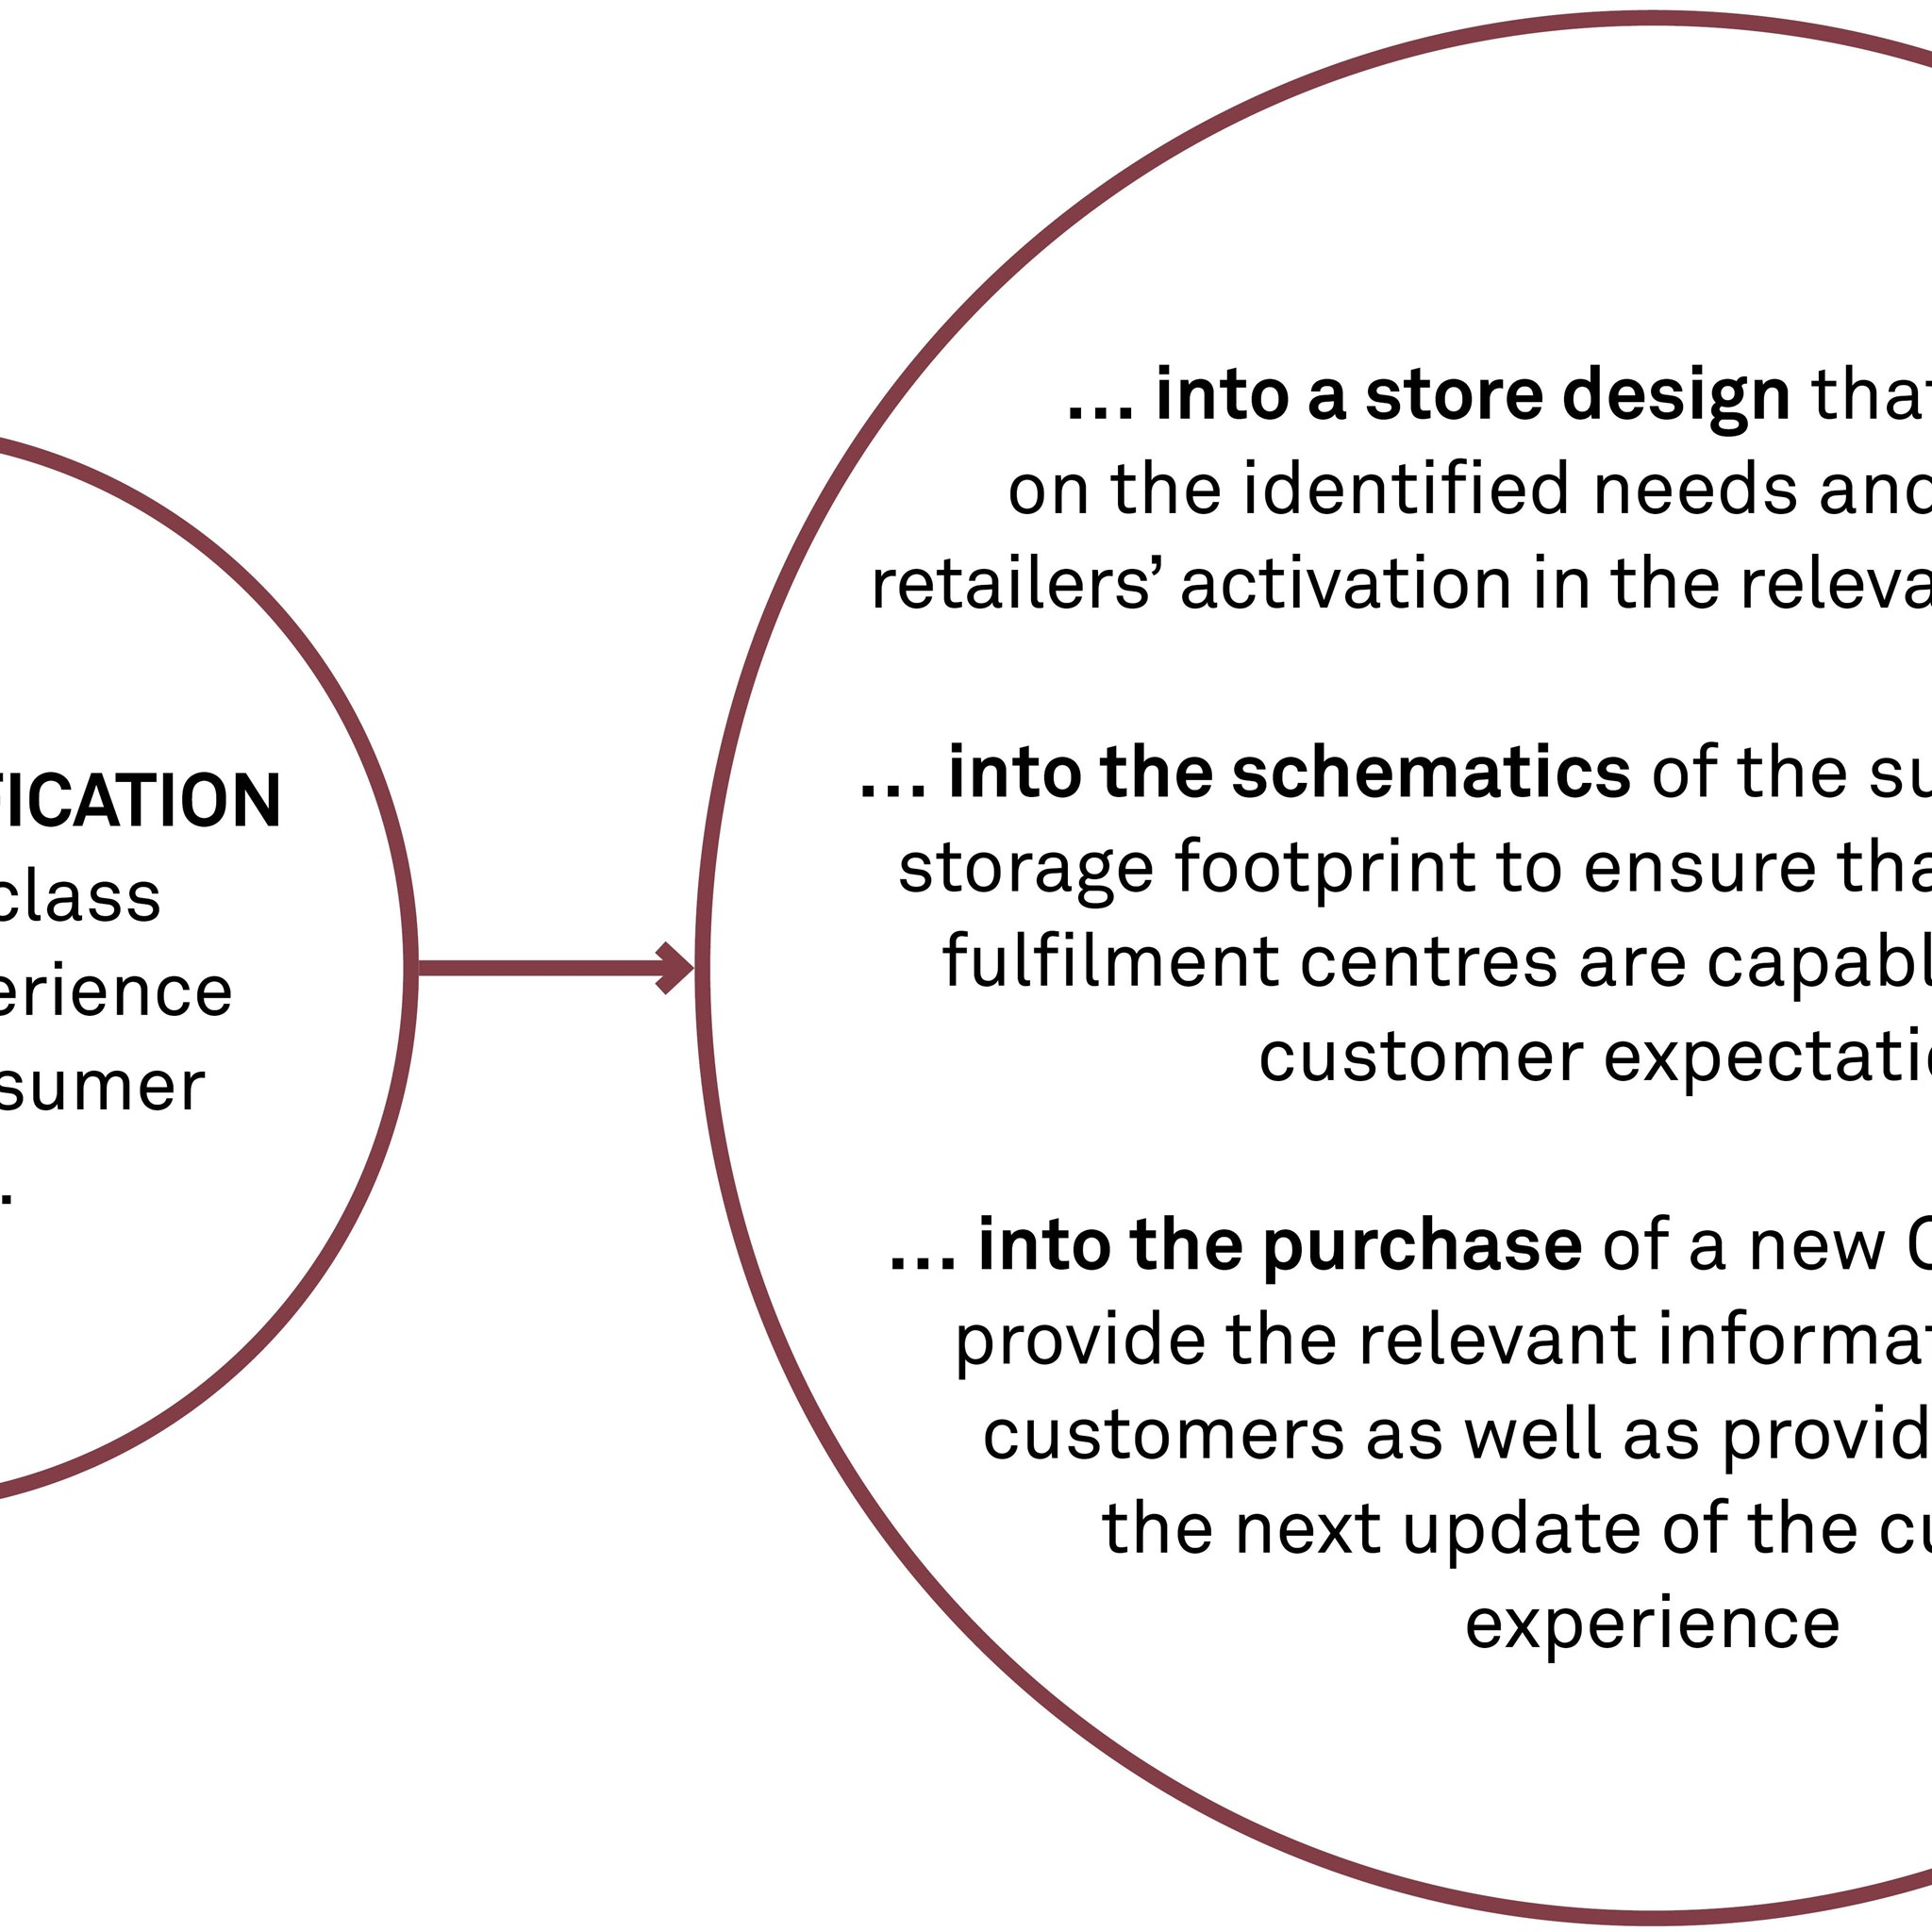 Design specification for a world-class customer experience